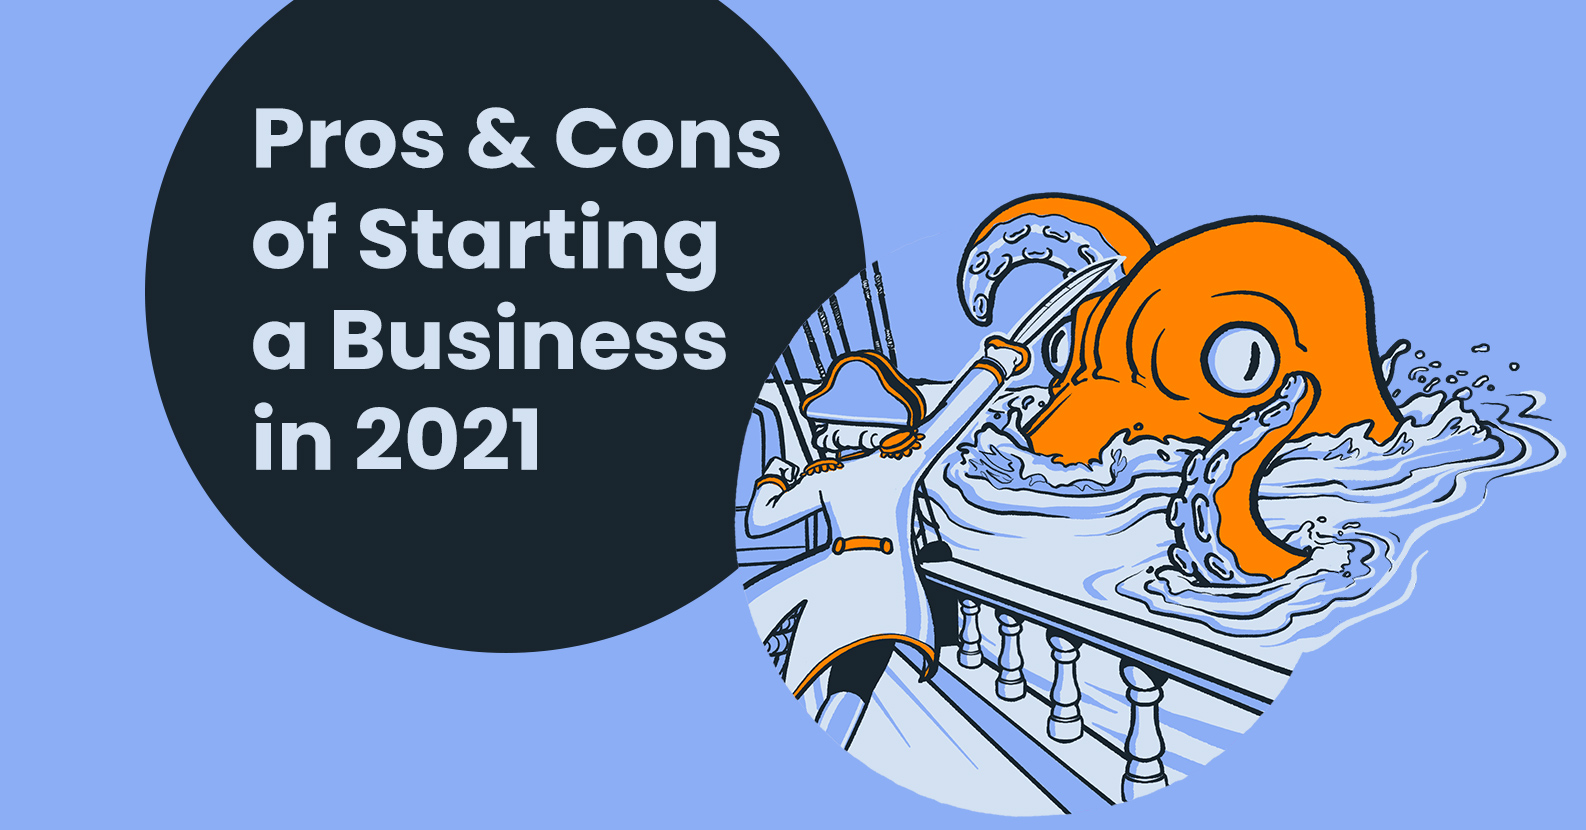 Pros and Cons of Starting a Business in 2021